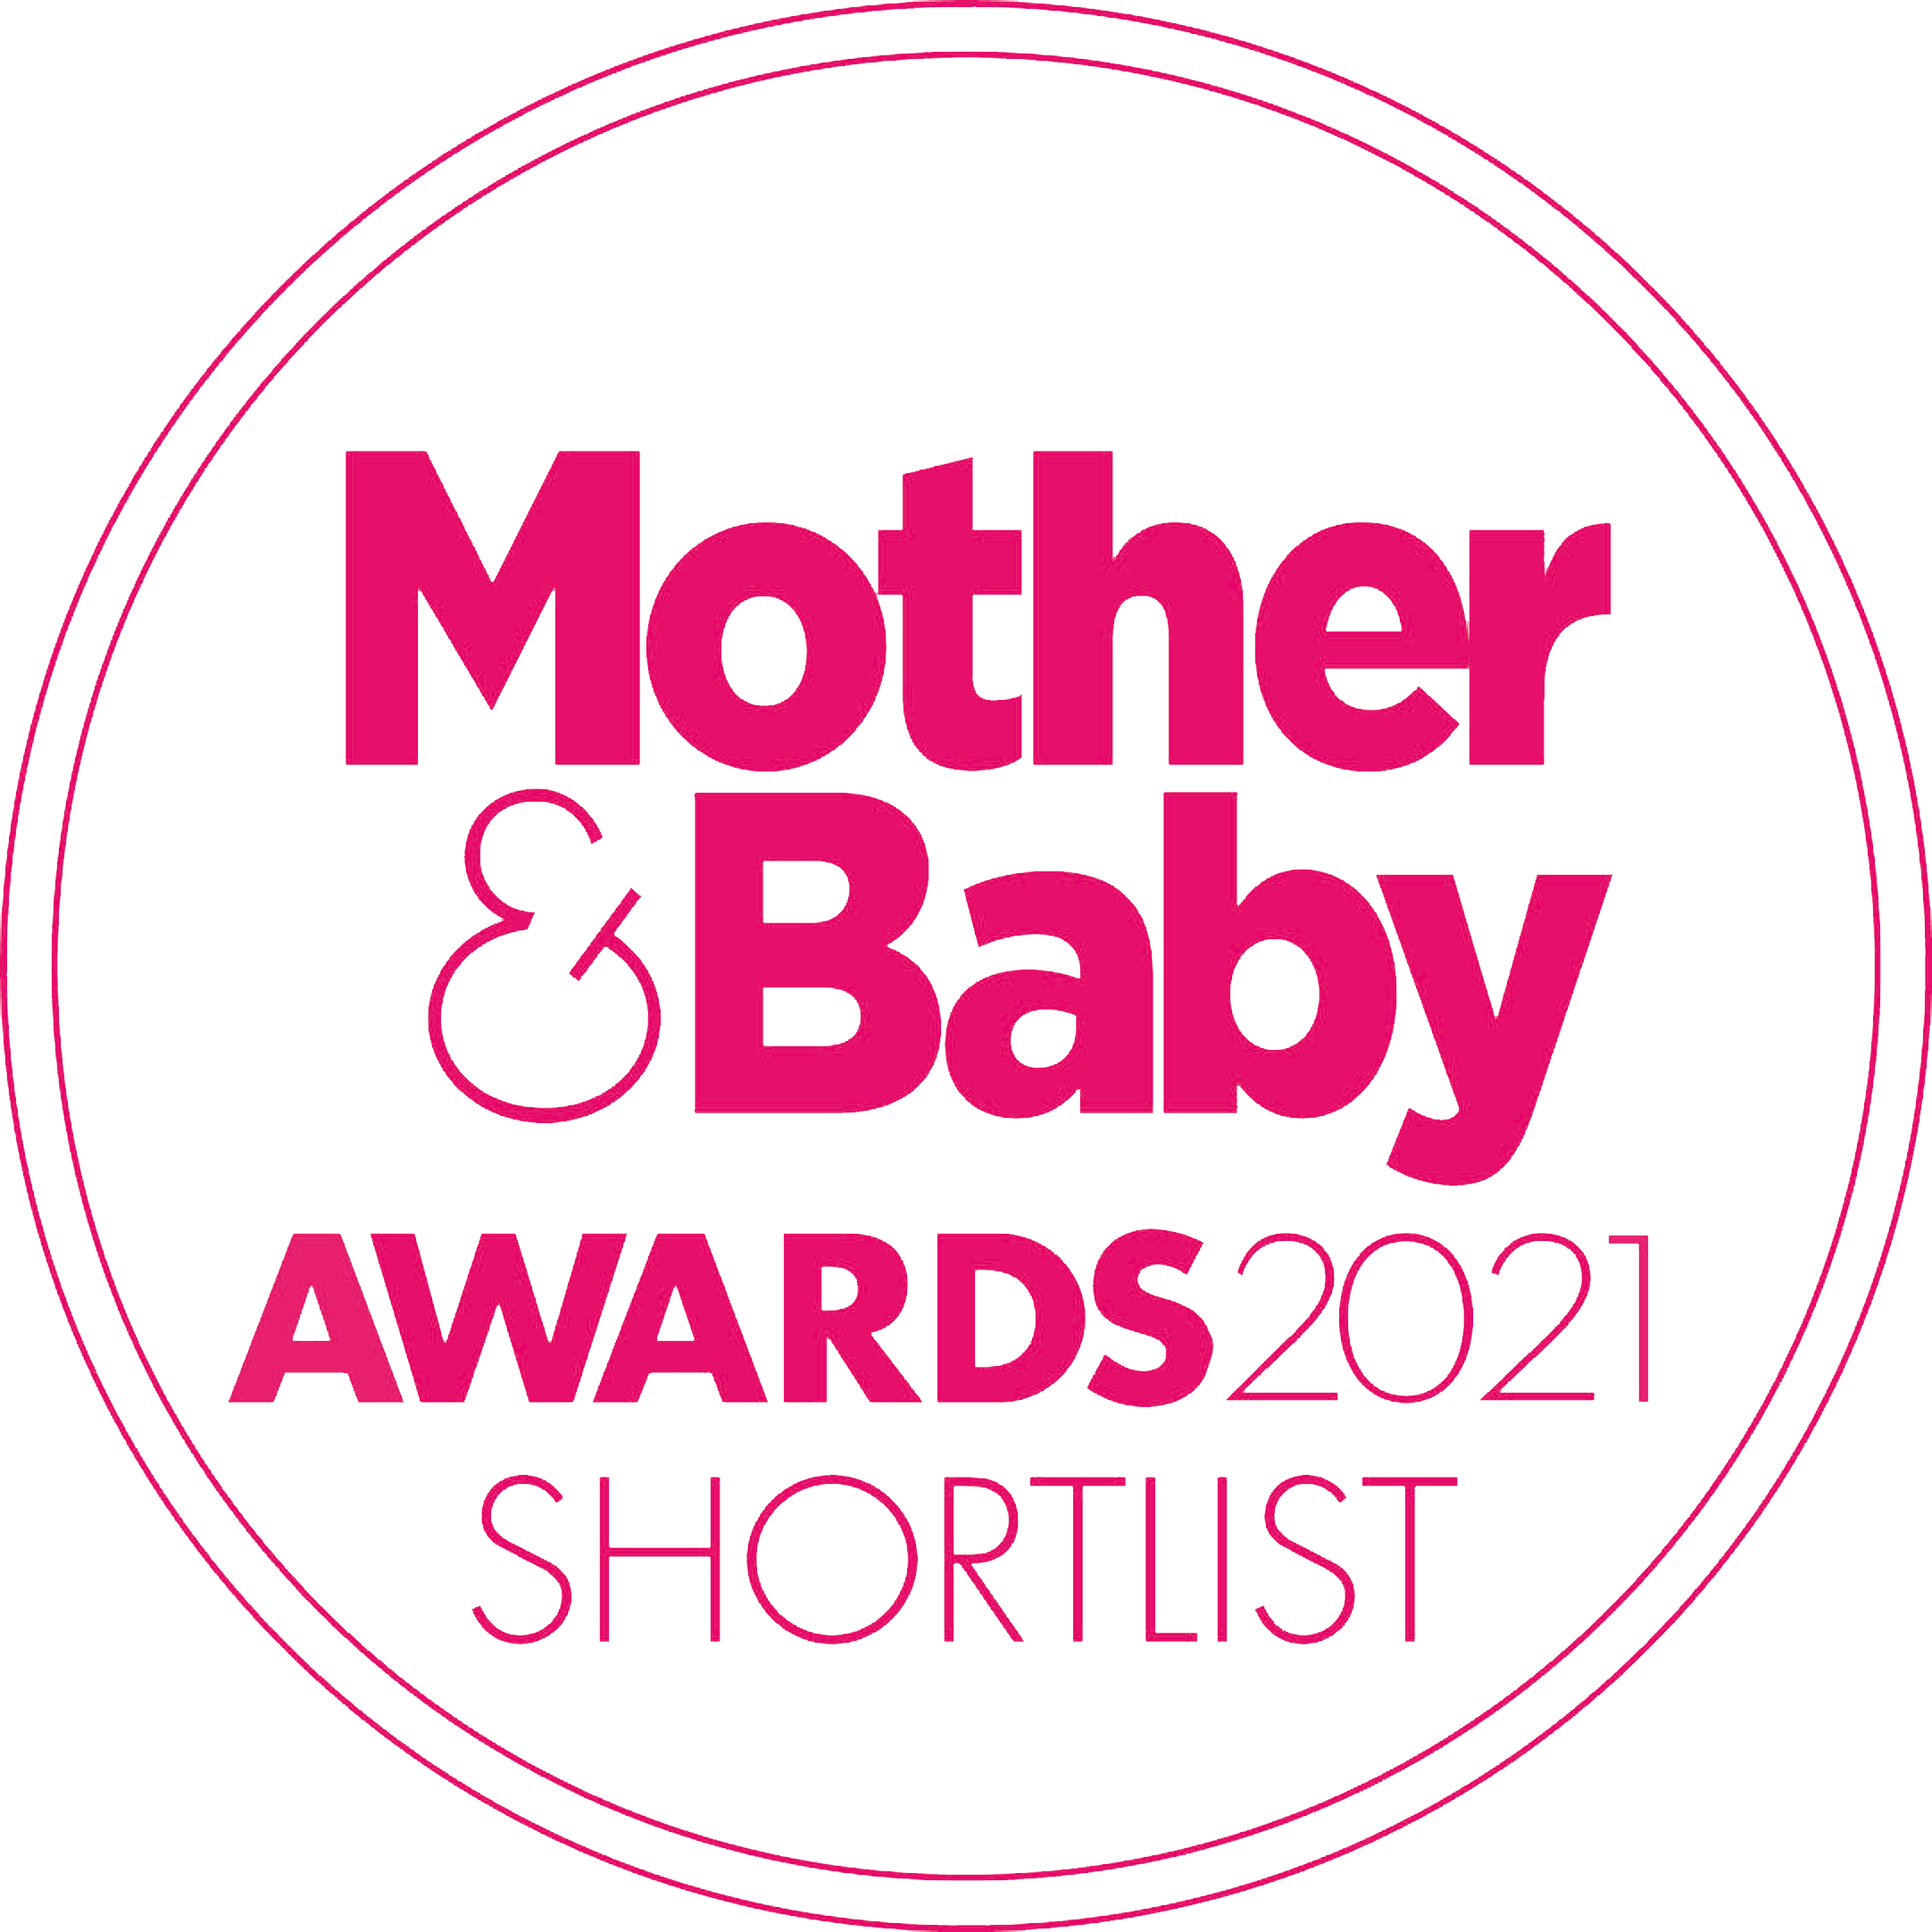 Mother & Baby Awards 2021